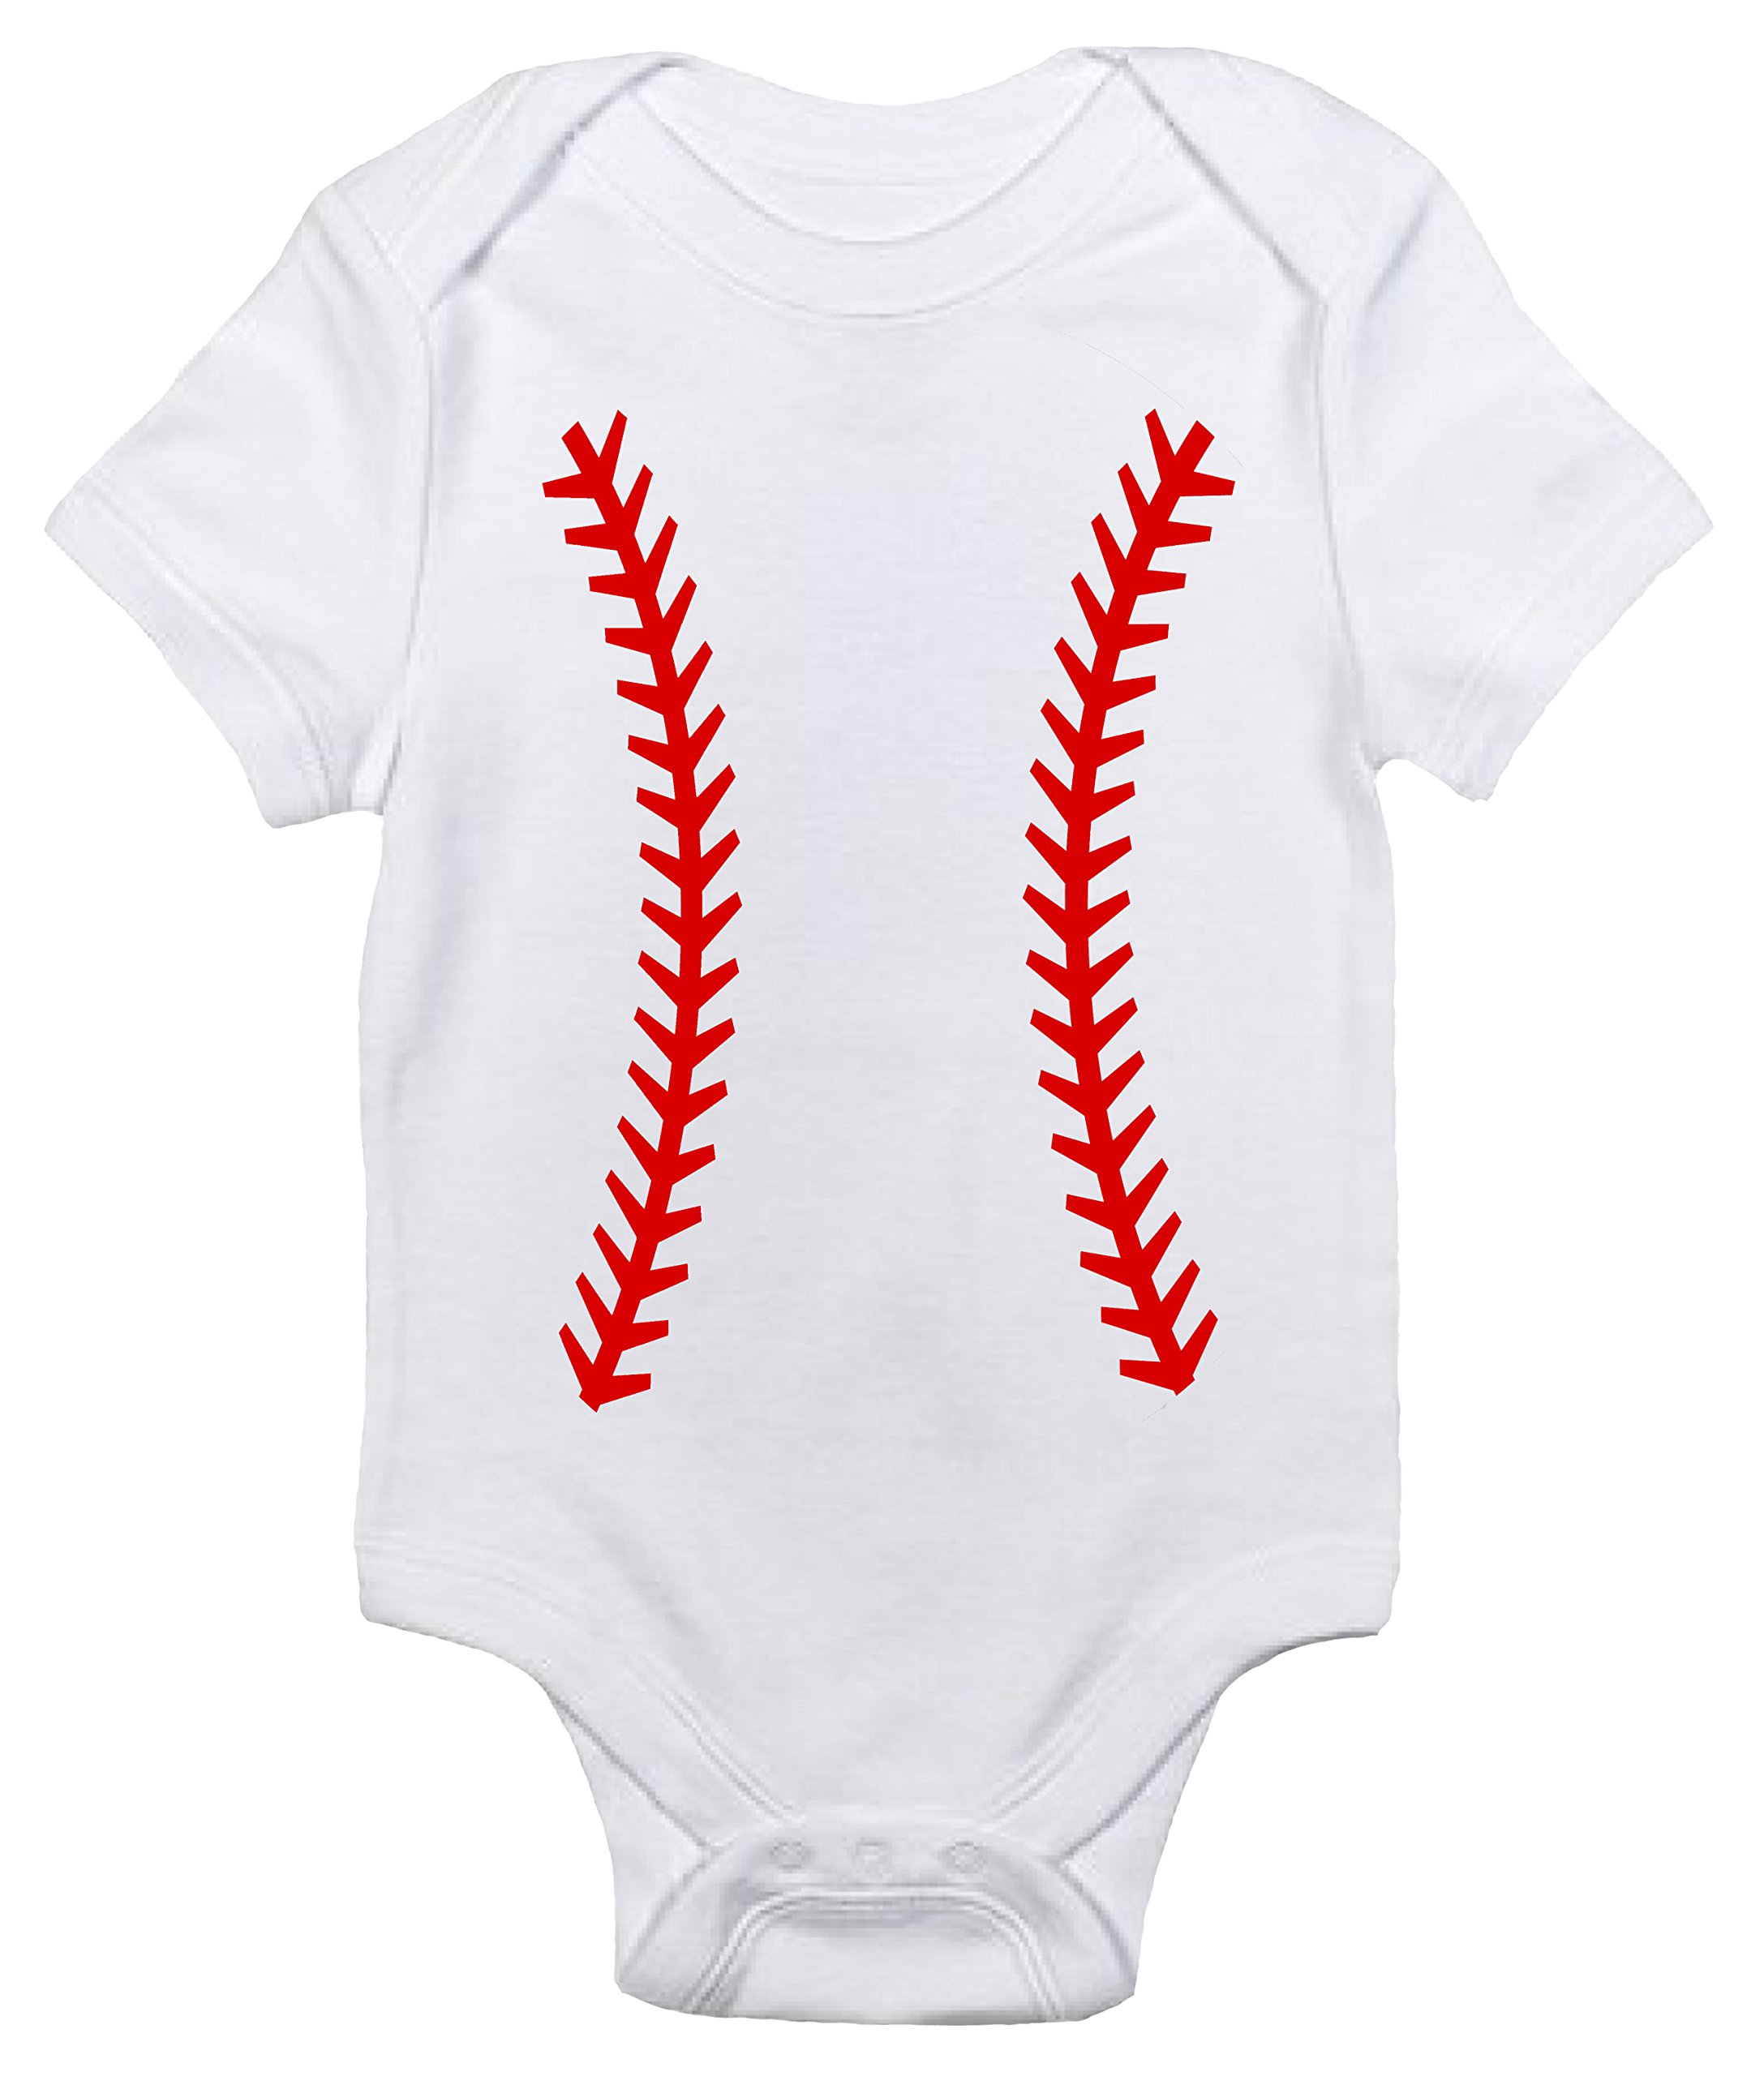 Laughing Giraffe Baseball Custom Personalized One-piece Baby Bodysuit With Your Name and Number (6-12 Months)